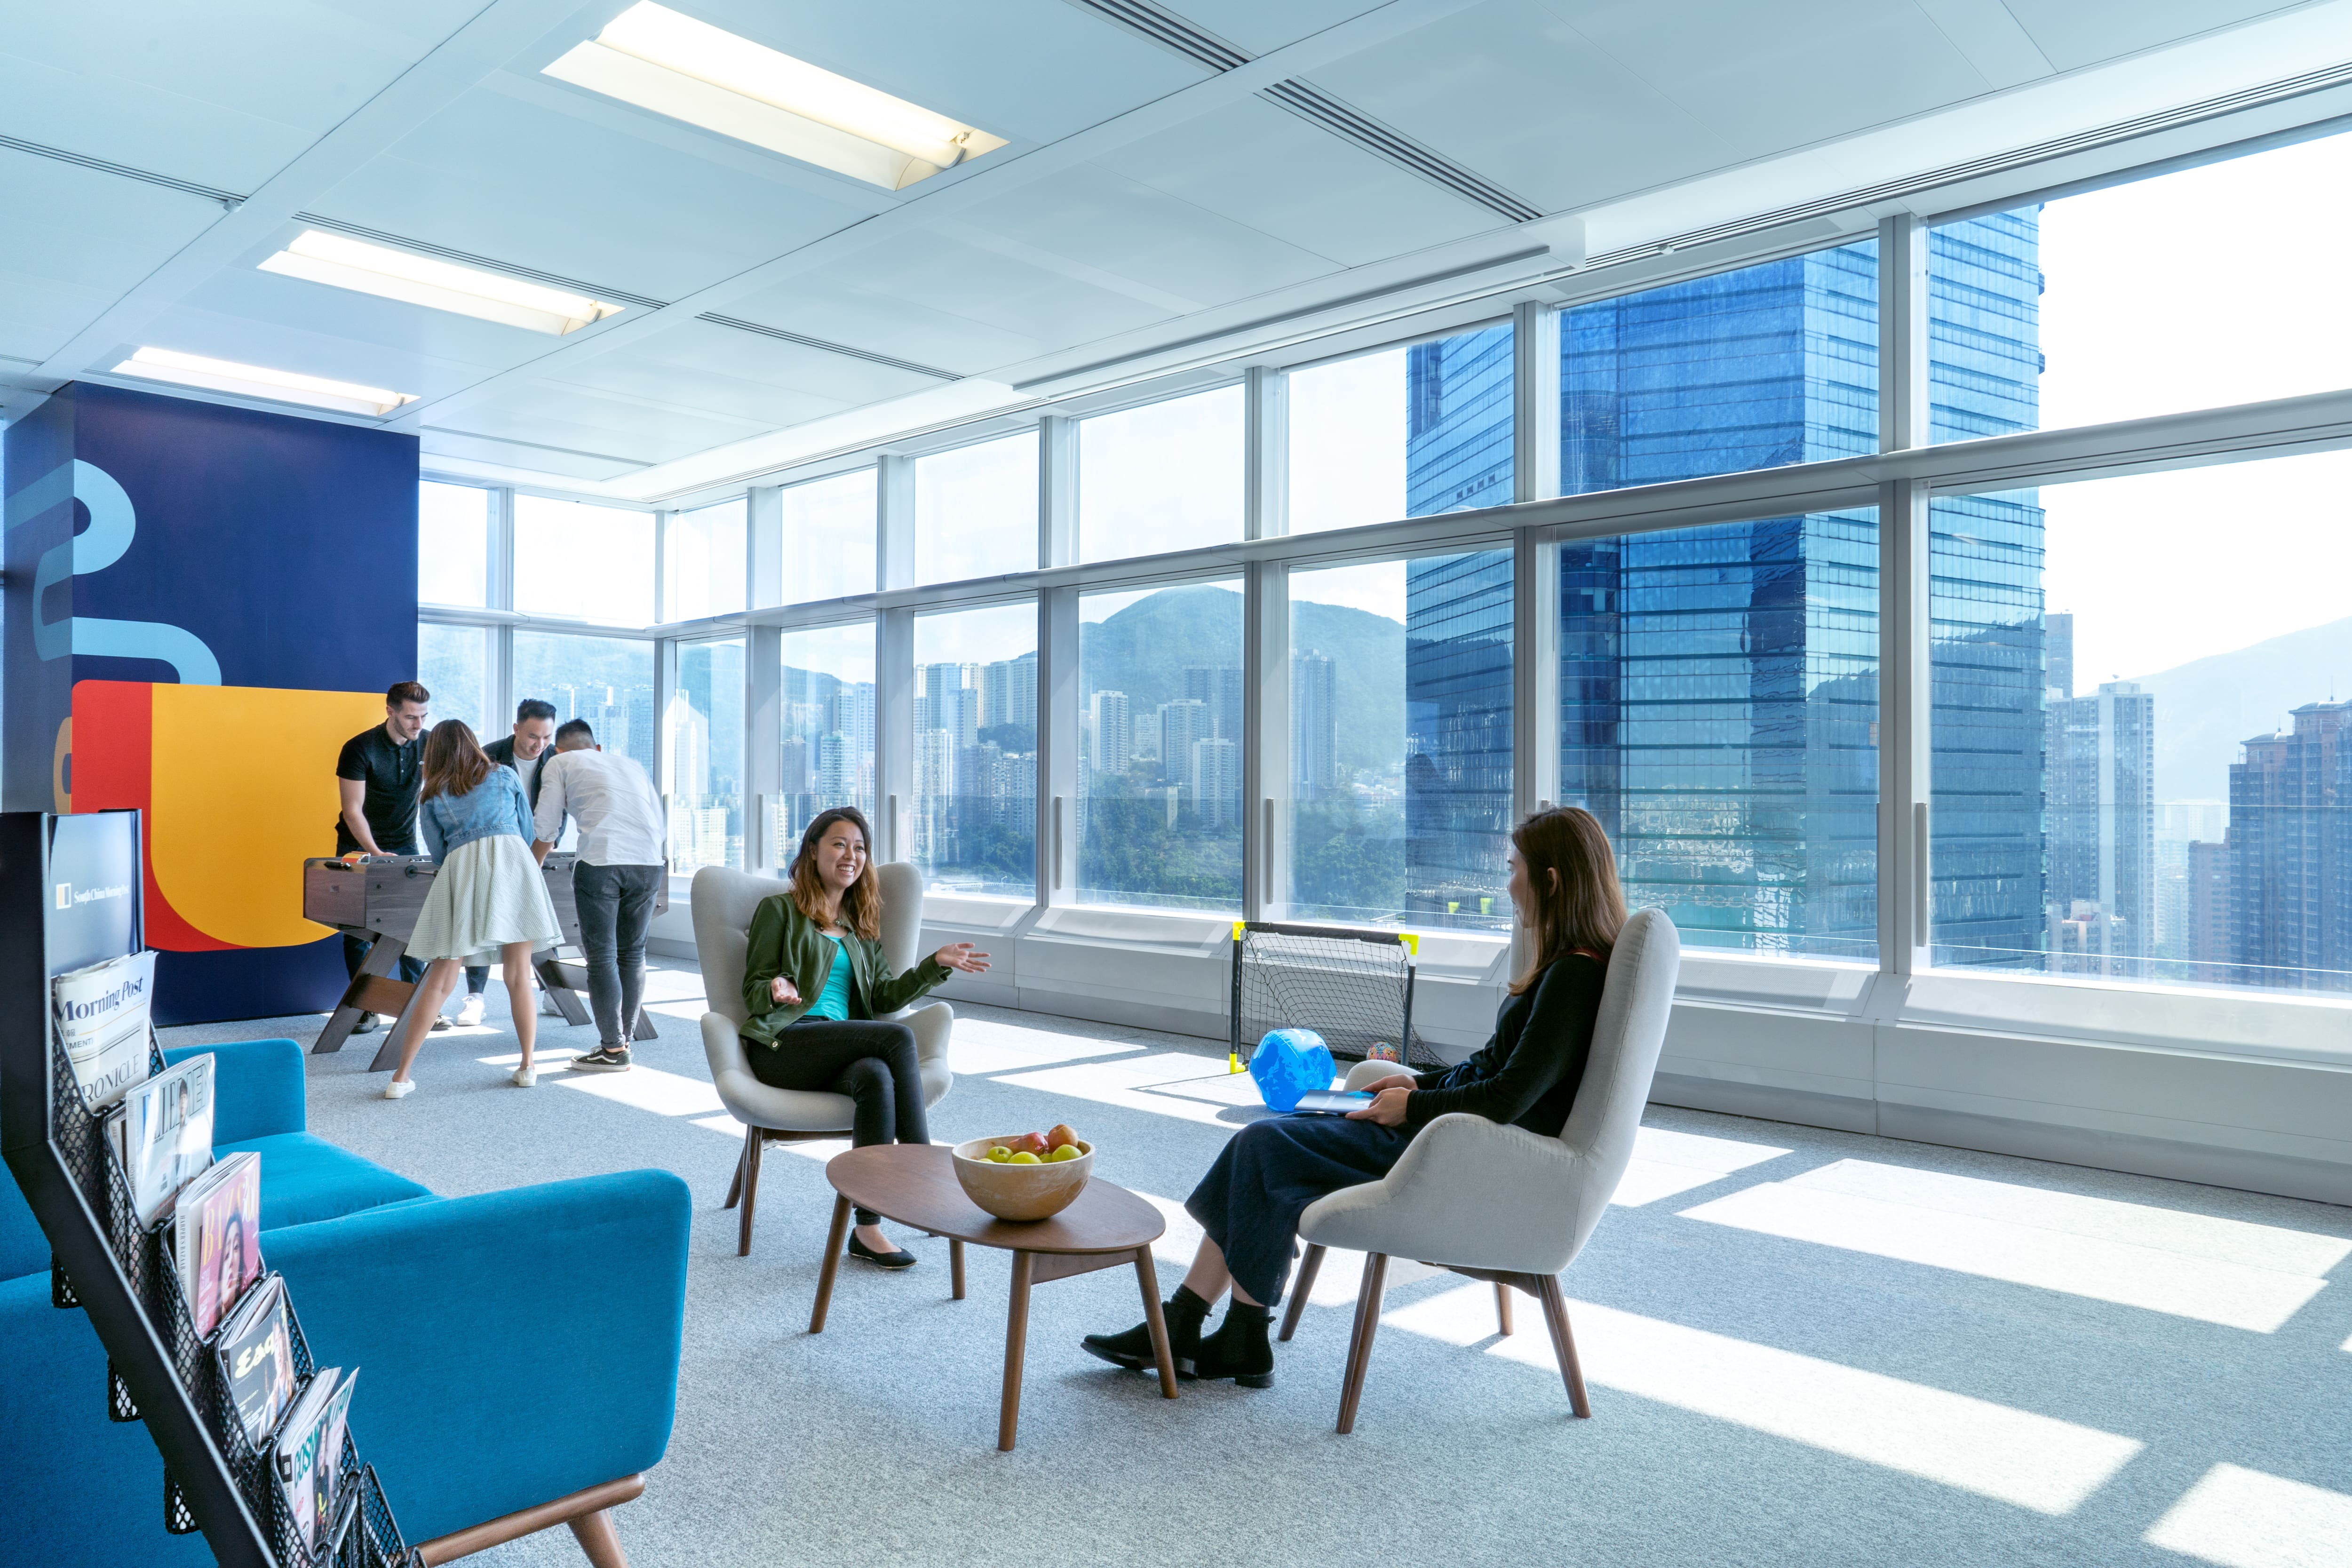 Space Matrix focuses on building Workplace wellbeing experiences for its clients